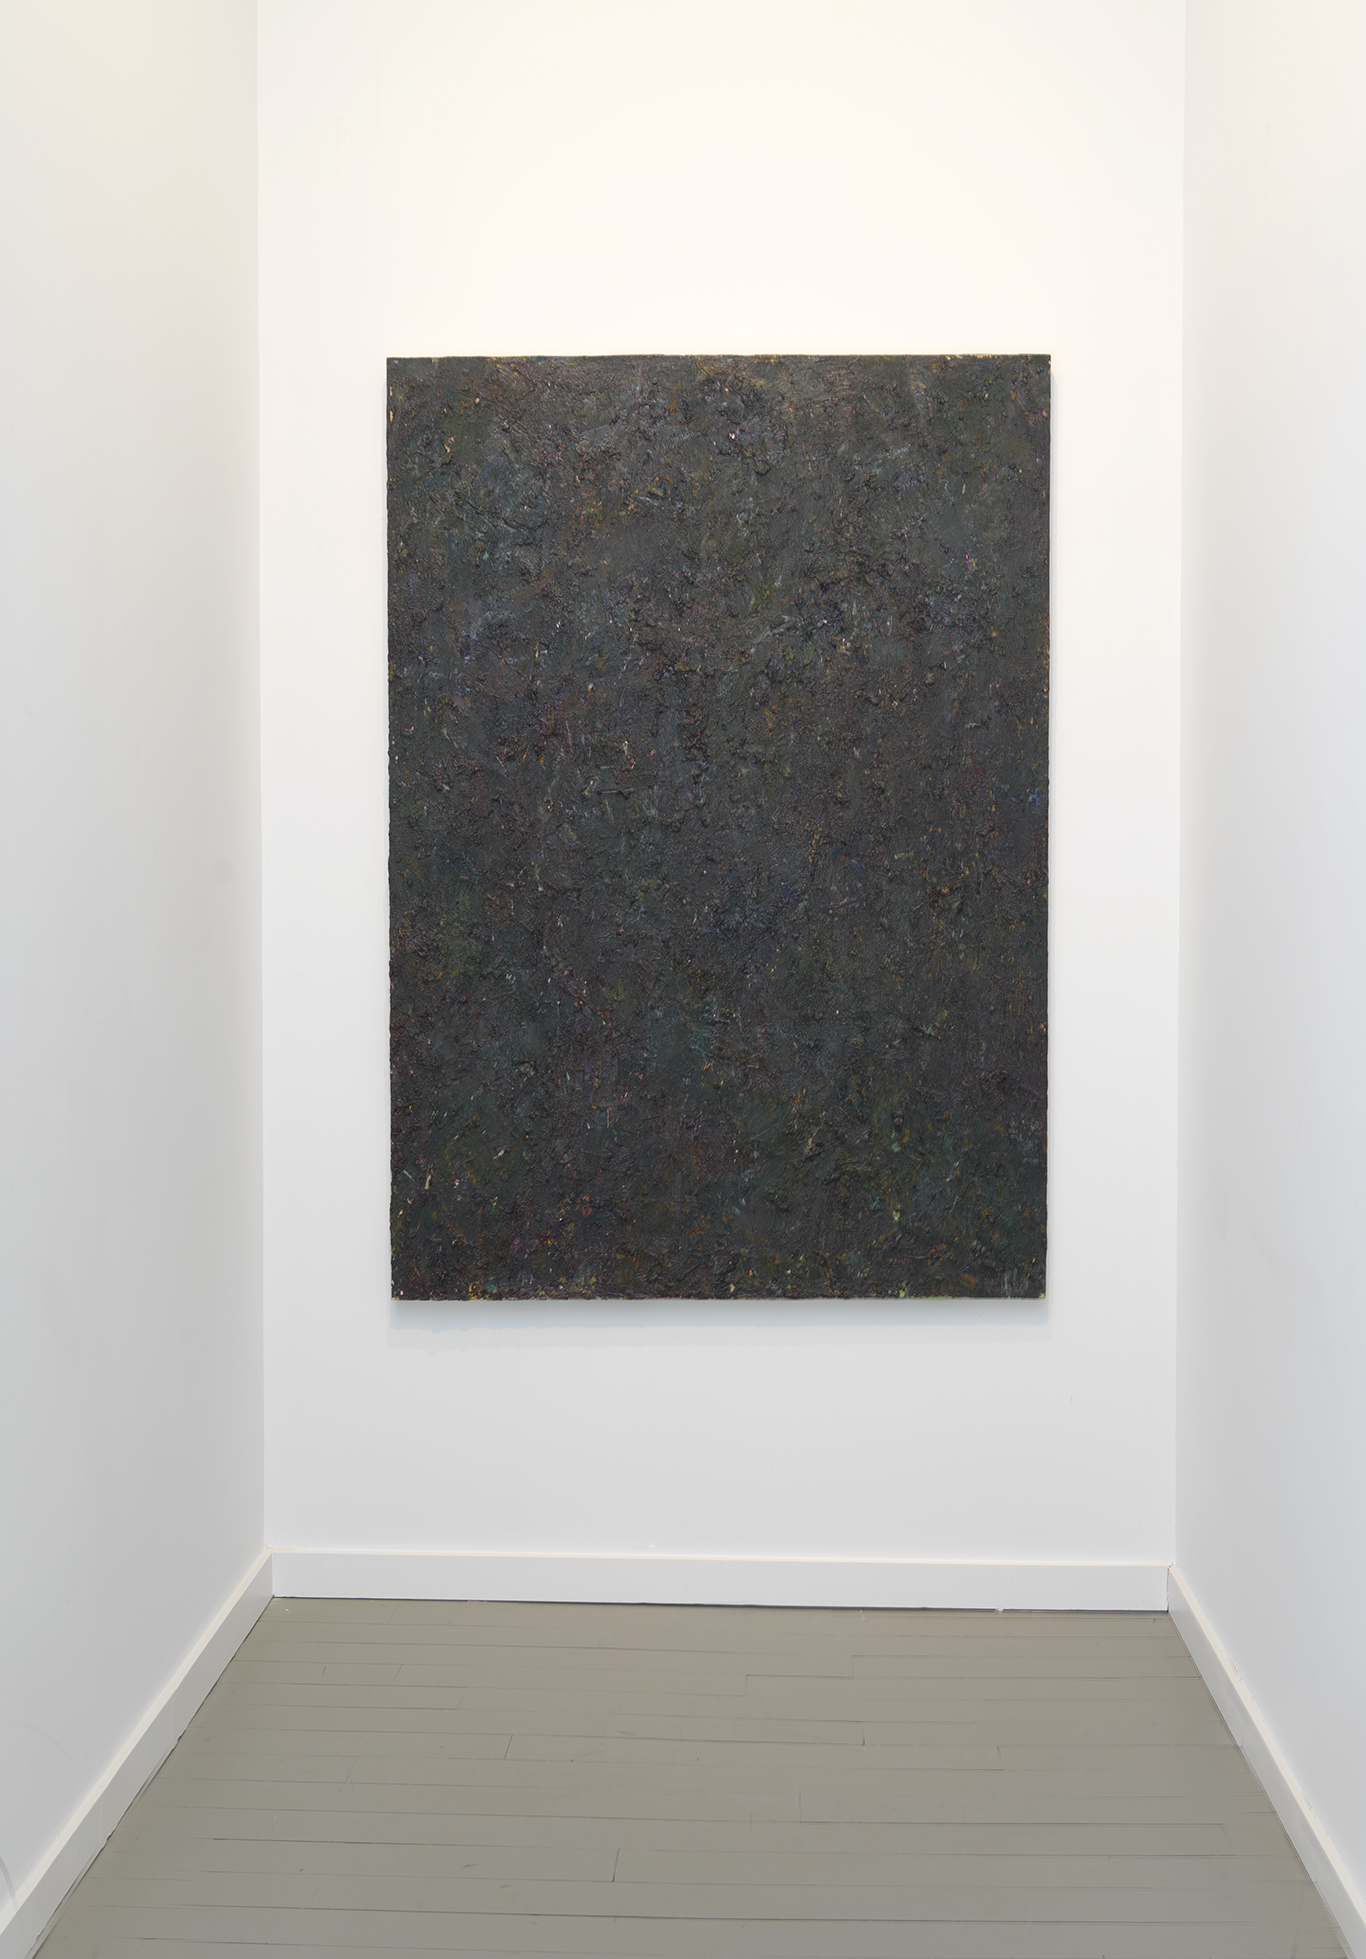 Untitled, 1987 Oil on canvas 72 x 50 inches